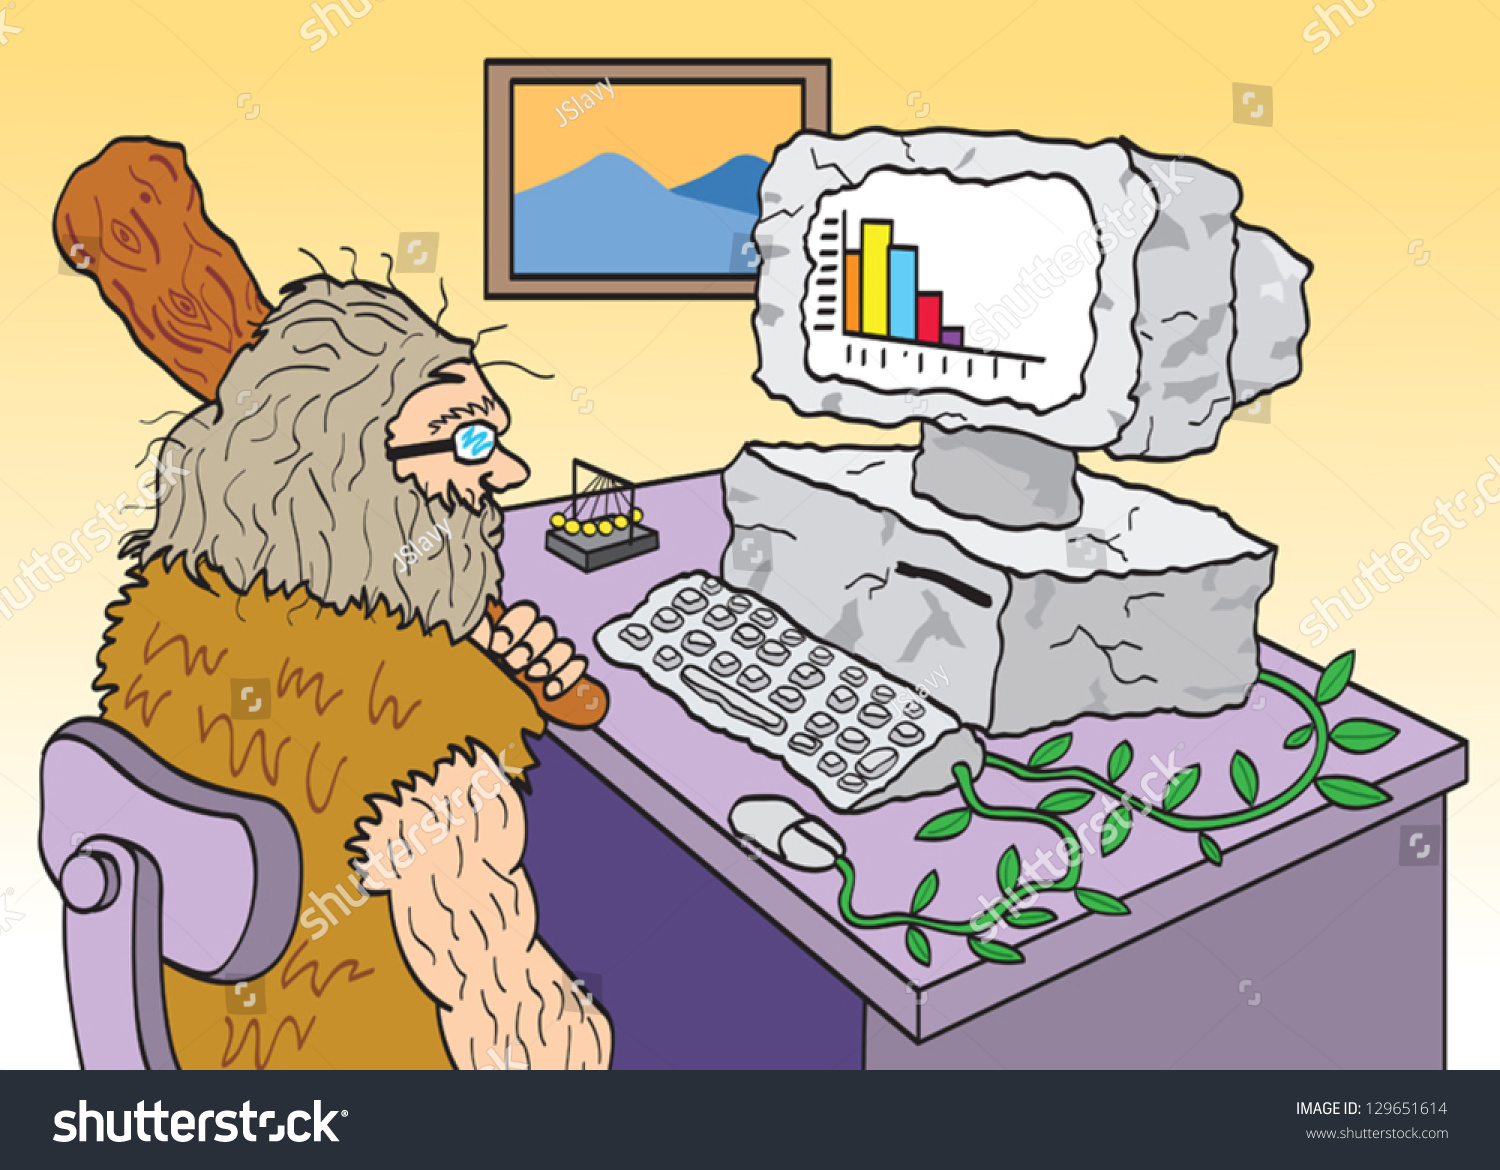 Caveman Phone : Caveman using old outdated computer stock photo vector